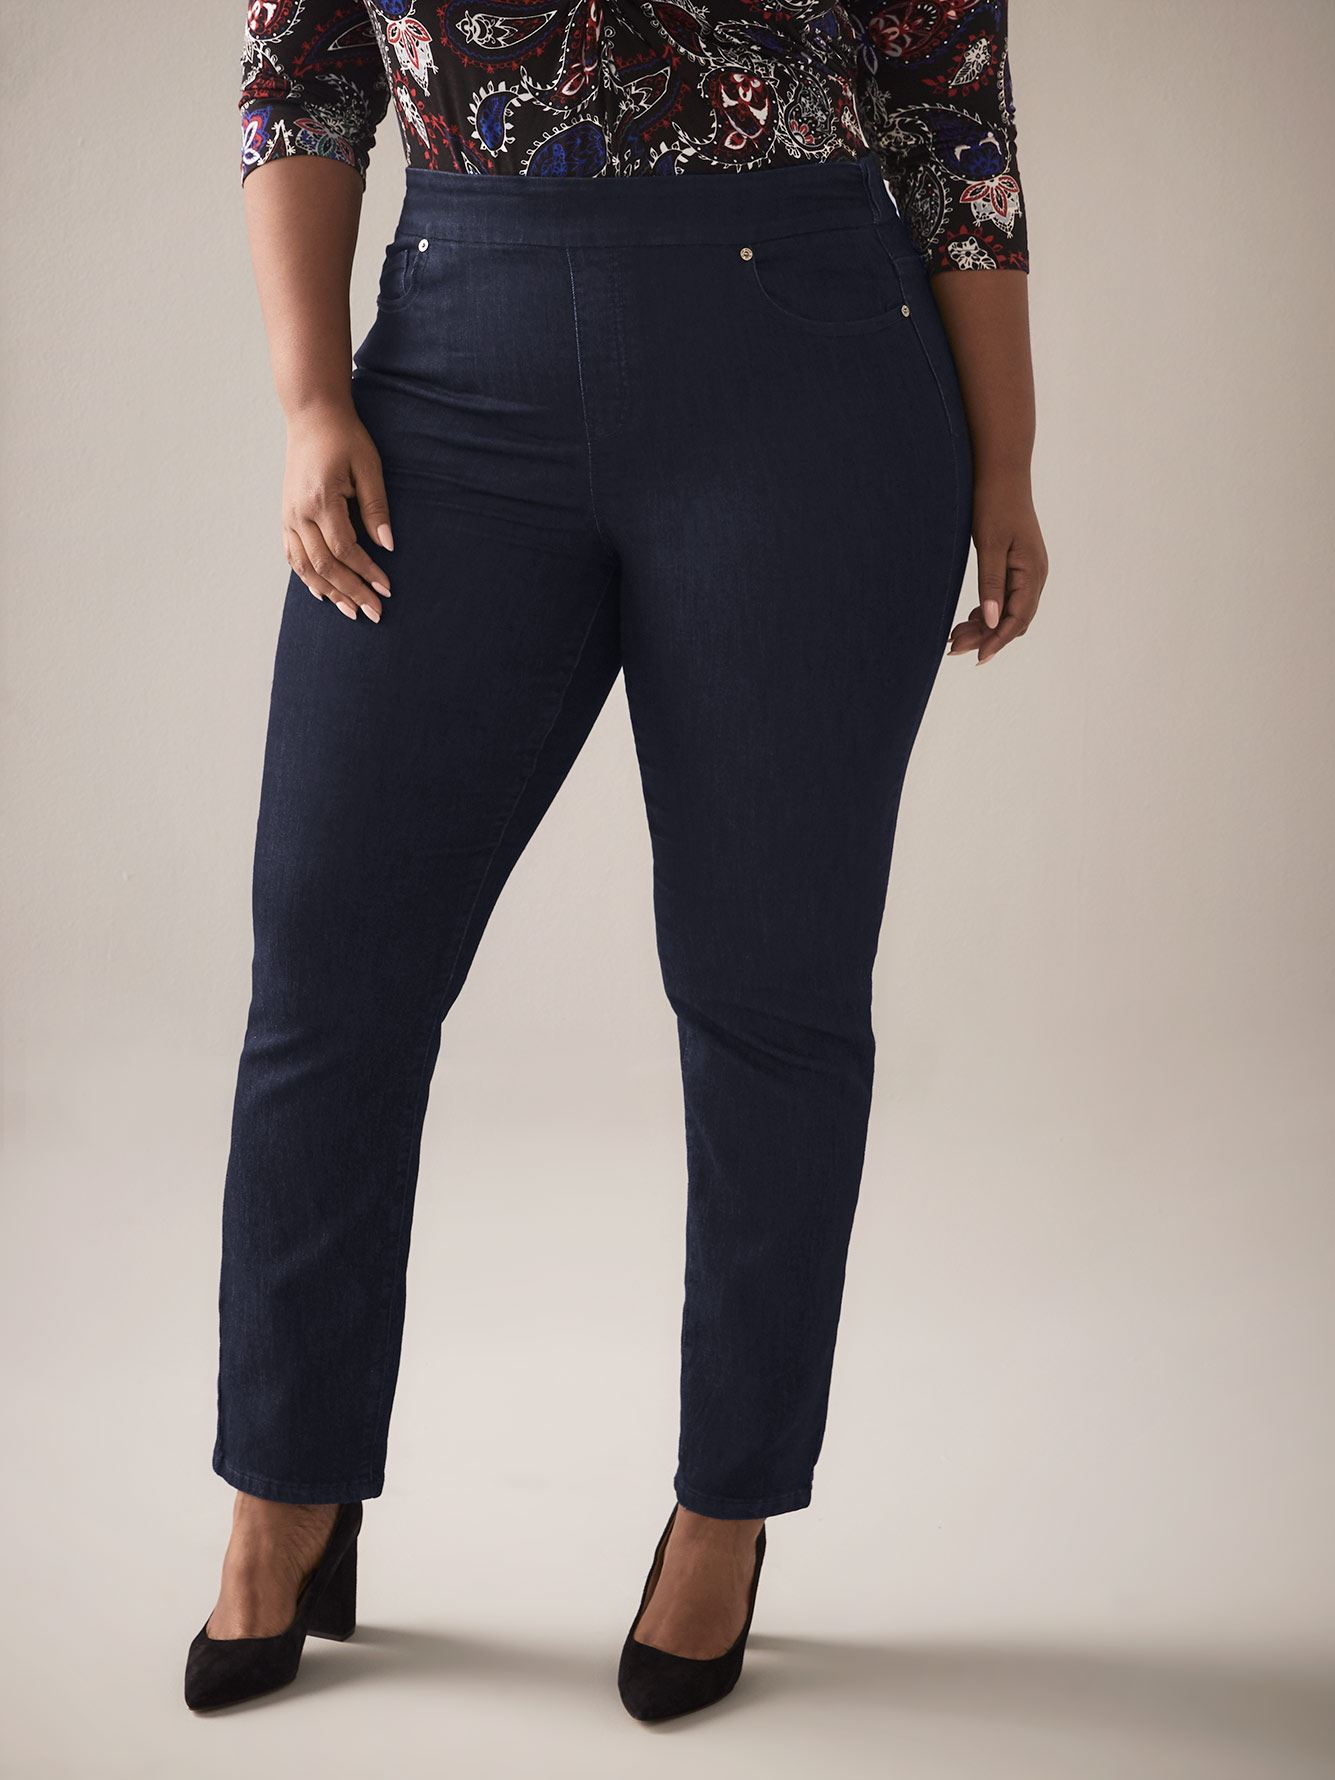 Universal Fit, Straight Leg Jean with Elastic Waistband - In Every Story